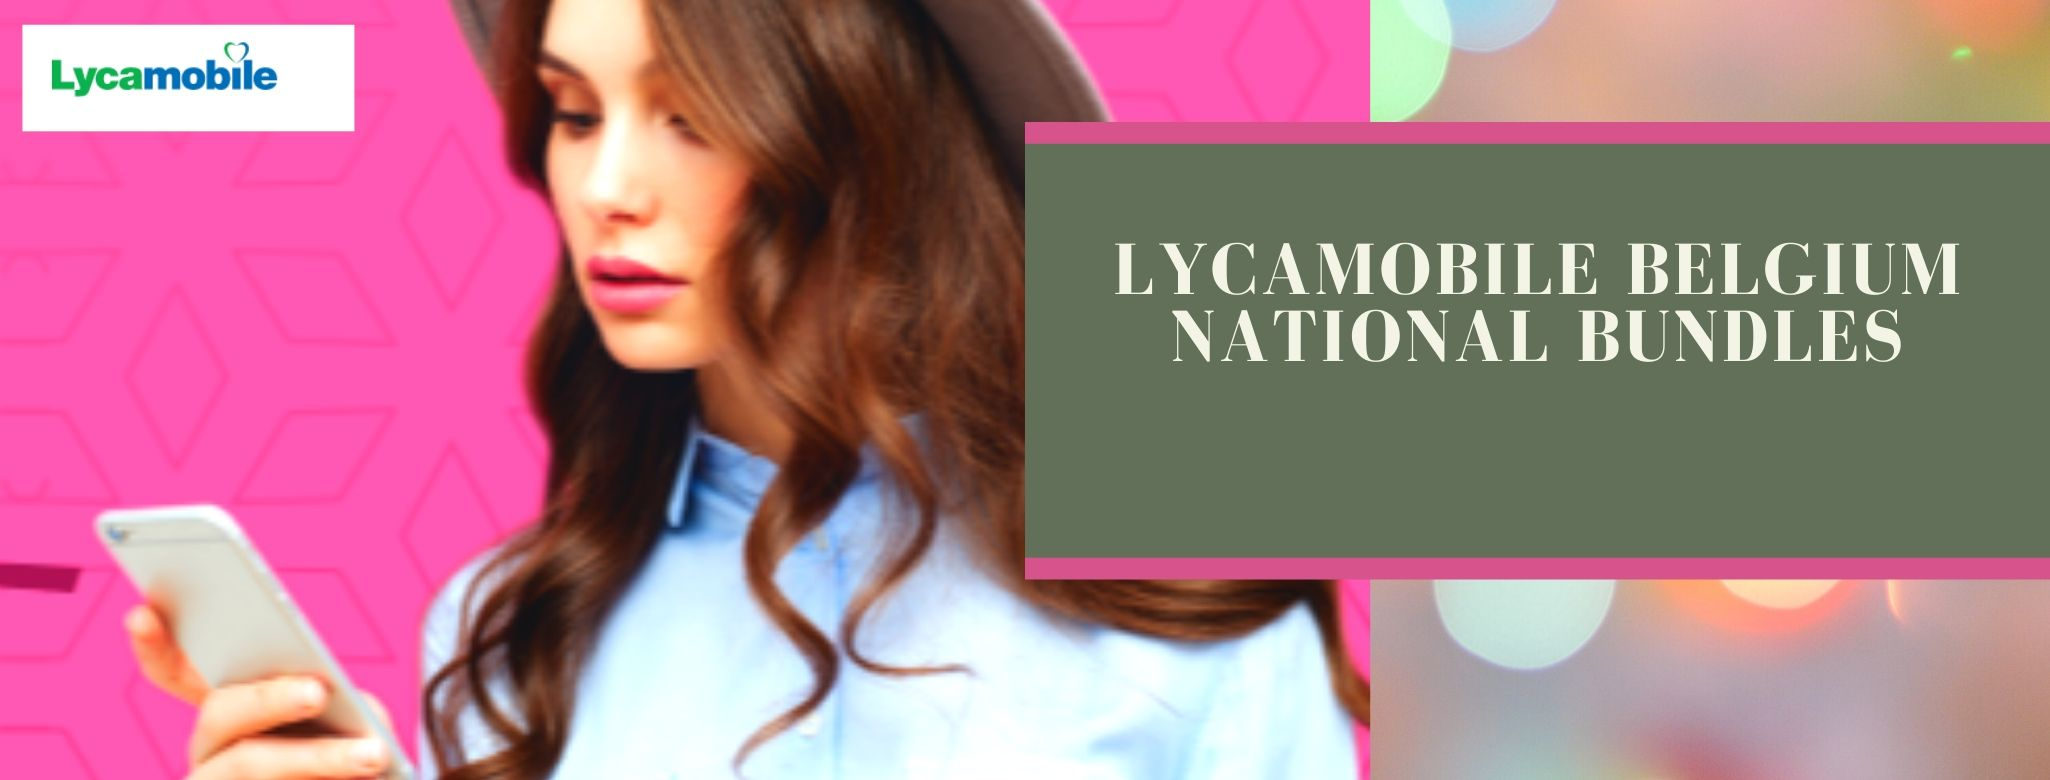 Lycamobile national call, SMS and data buckets for Blegium